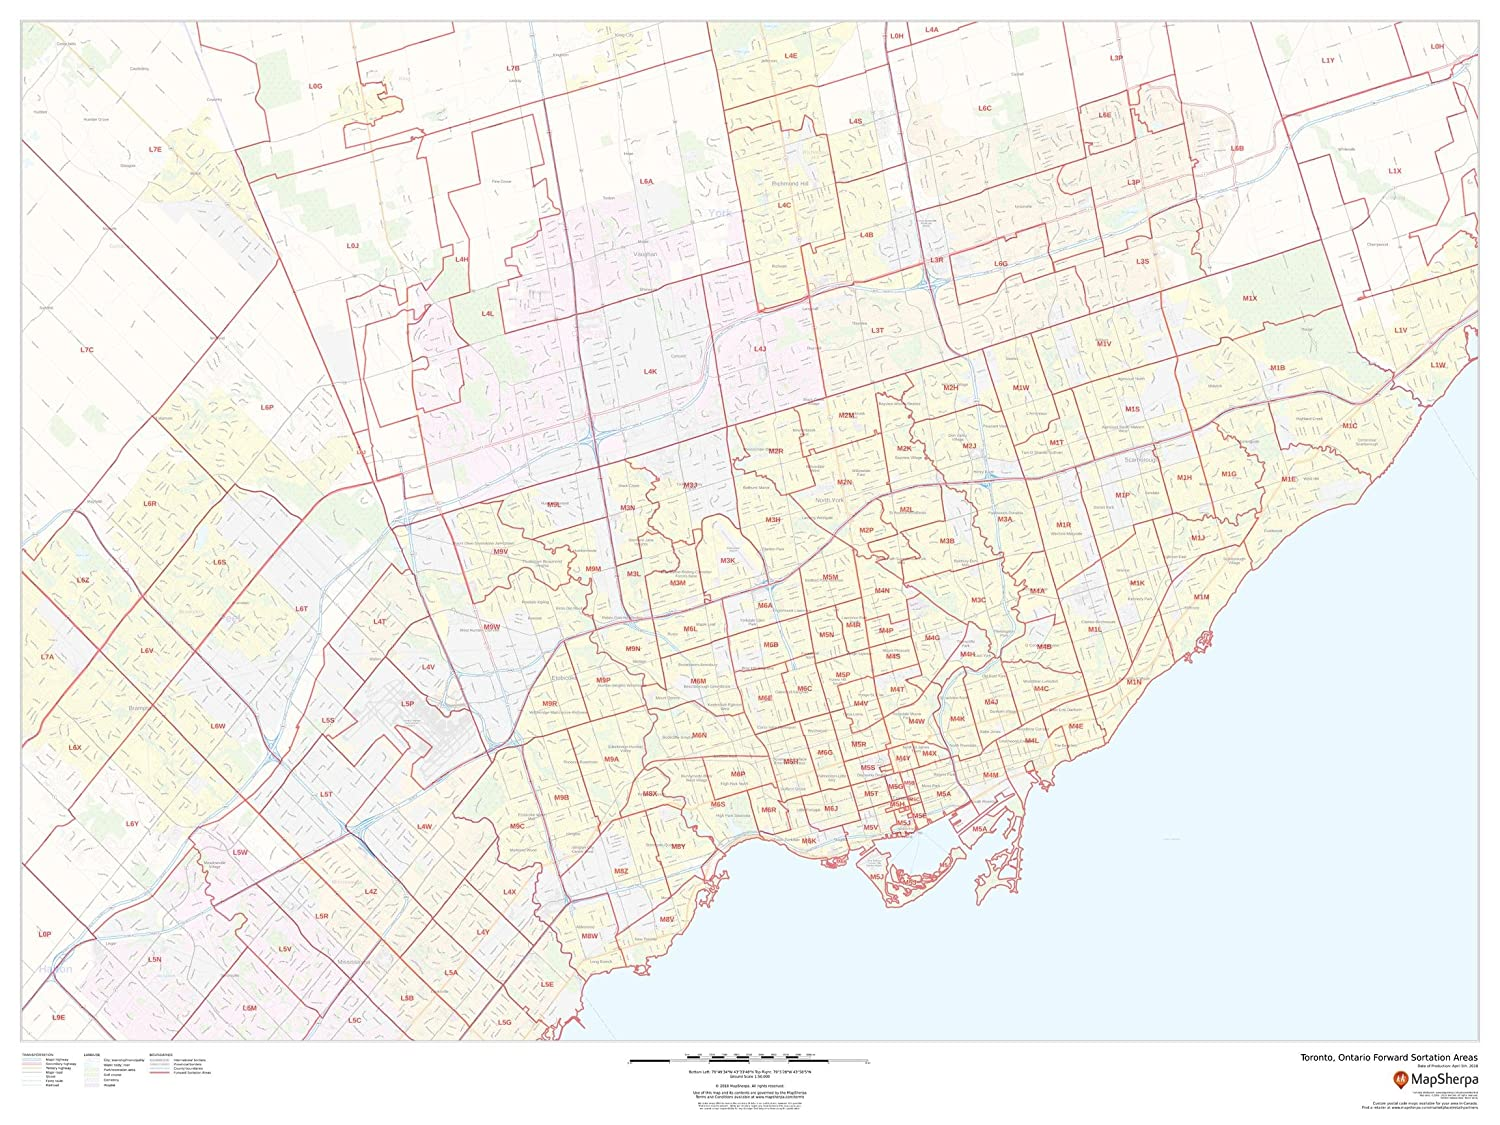 Postal Code Map Toronto Amazon.: Toronto, Ontario Postal Code Forward Sortation Areas